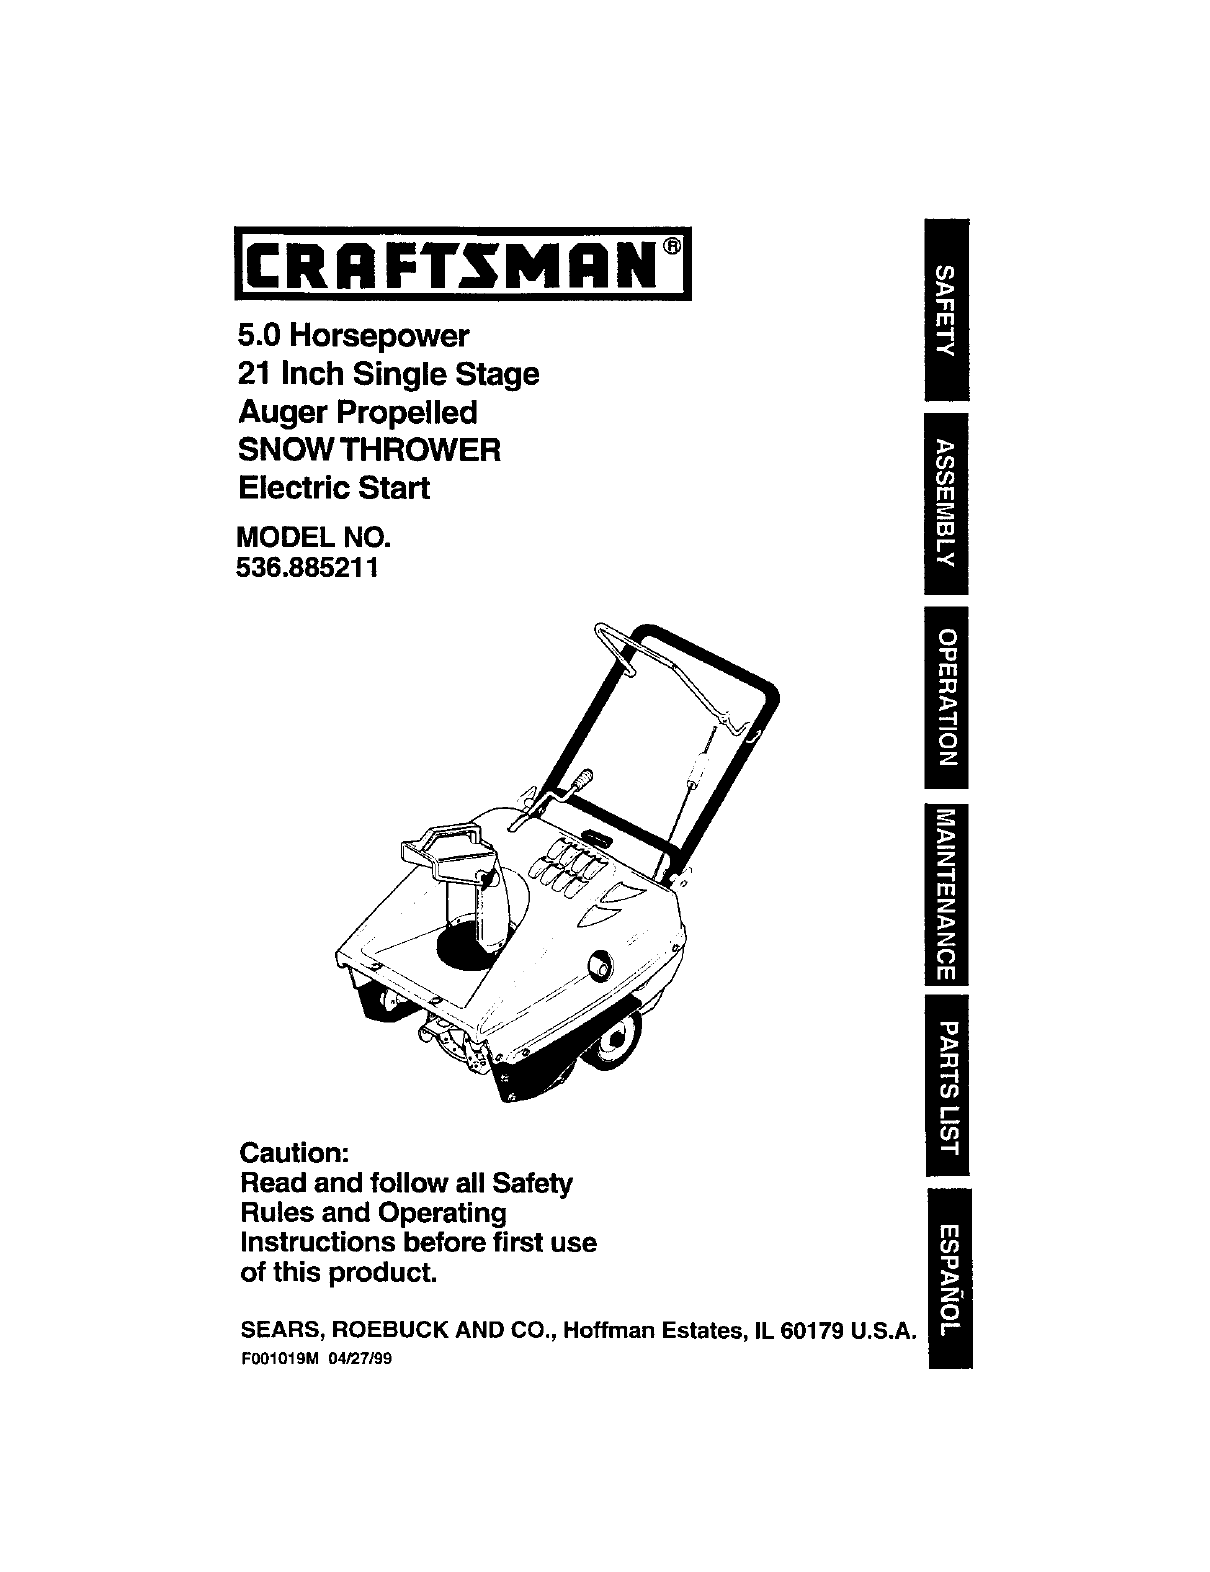 craftsman snowblower manual electric start